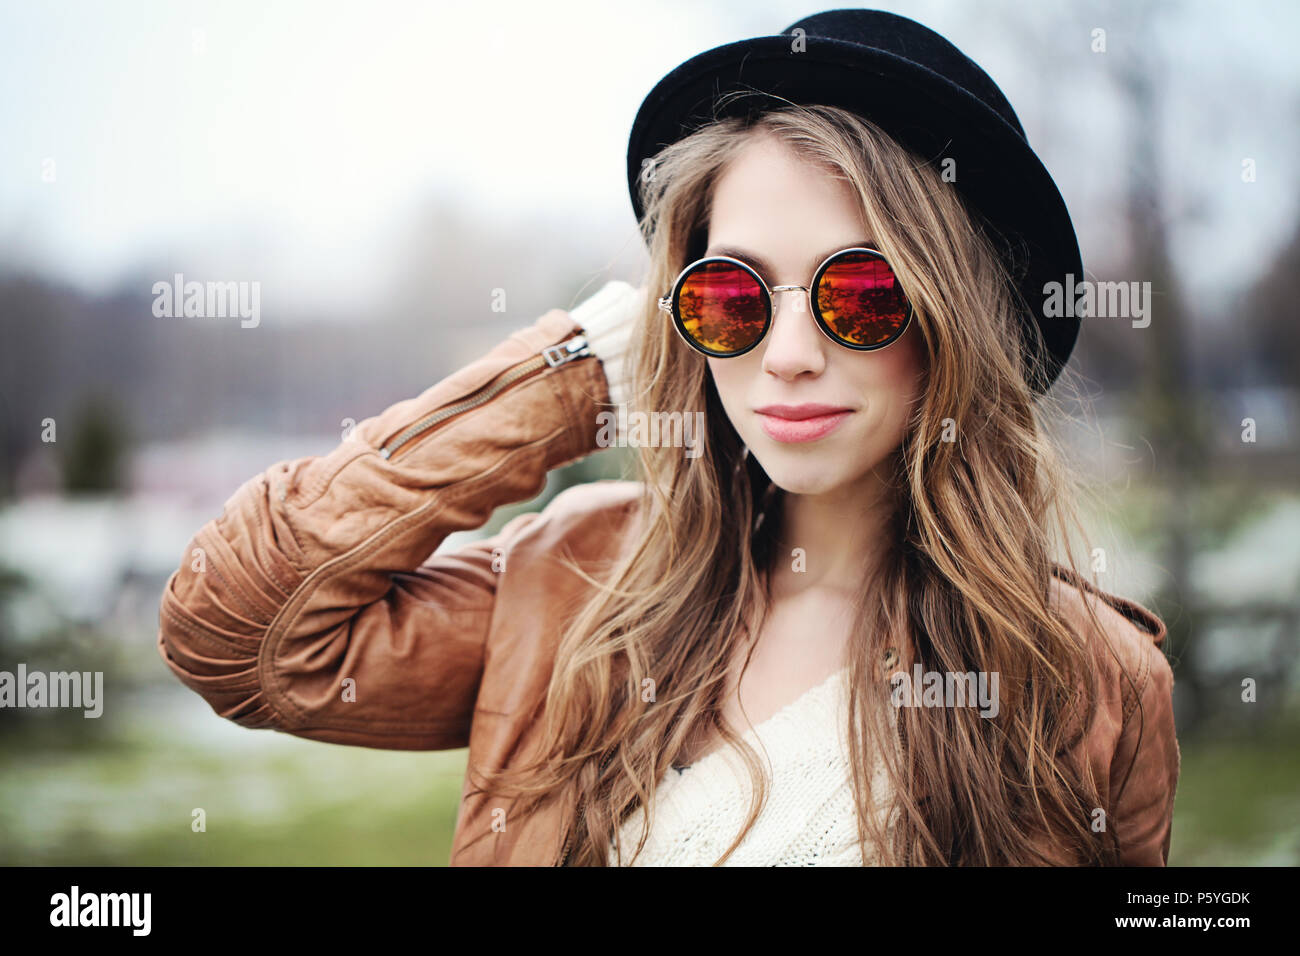 bf625025e5b Young happy woman with long brown hair in sunglasses and black hat ...